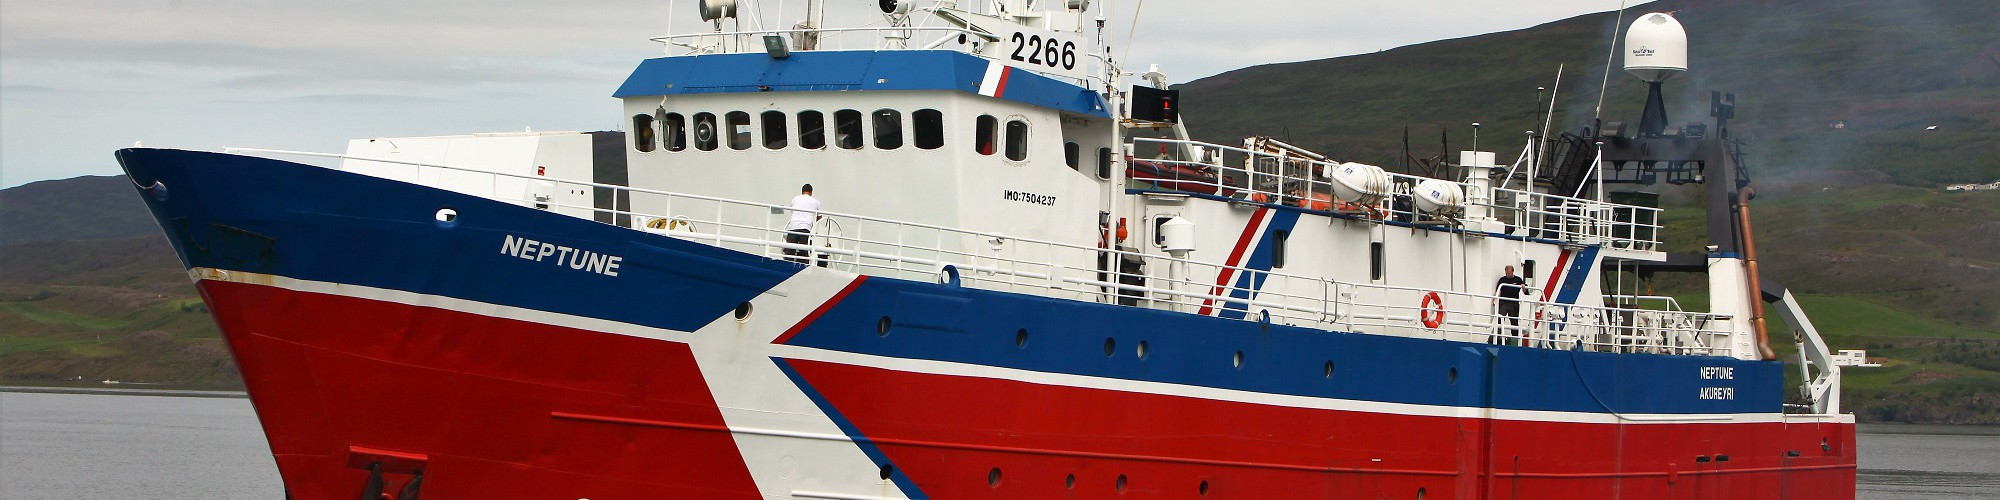 50 Meters Length Survey Vessel